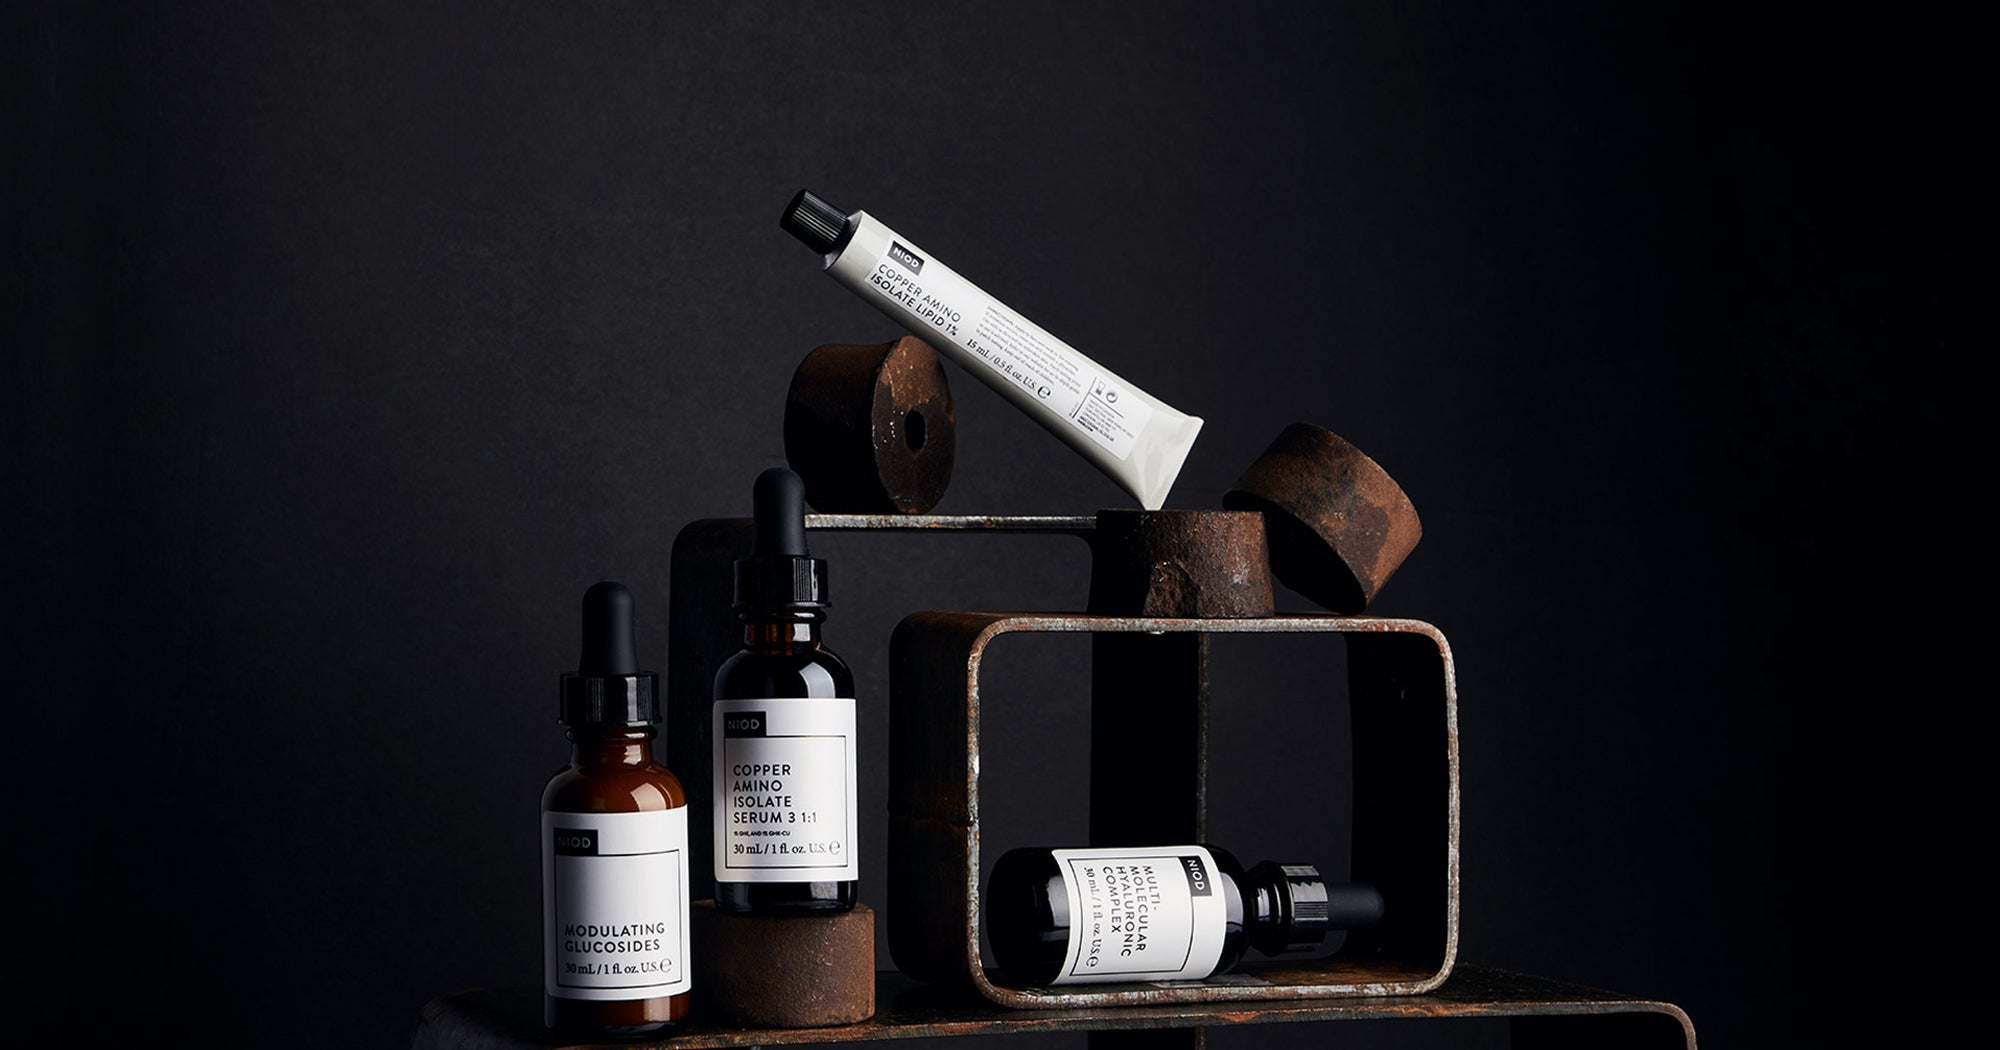 Niod Is The Ordinary's Chic Big Sister & The Skincare Products Are Incredible